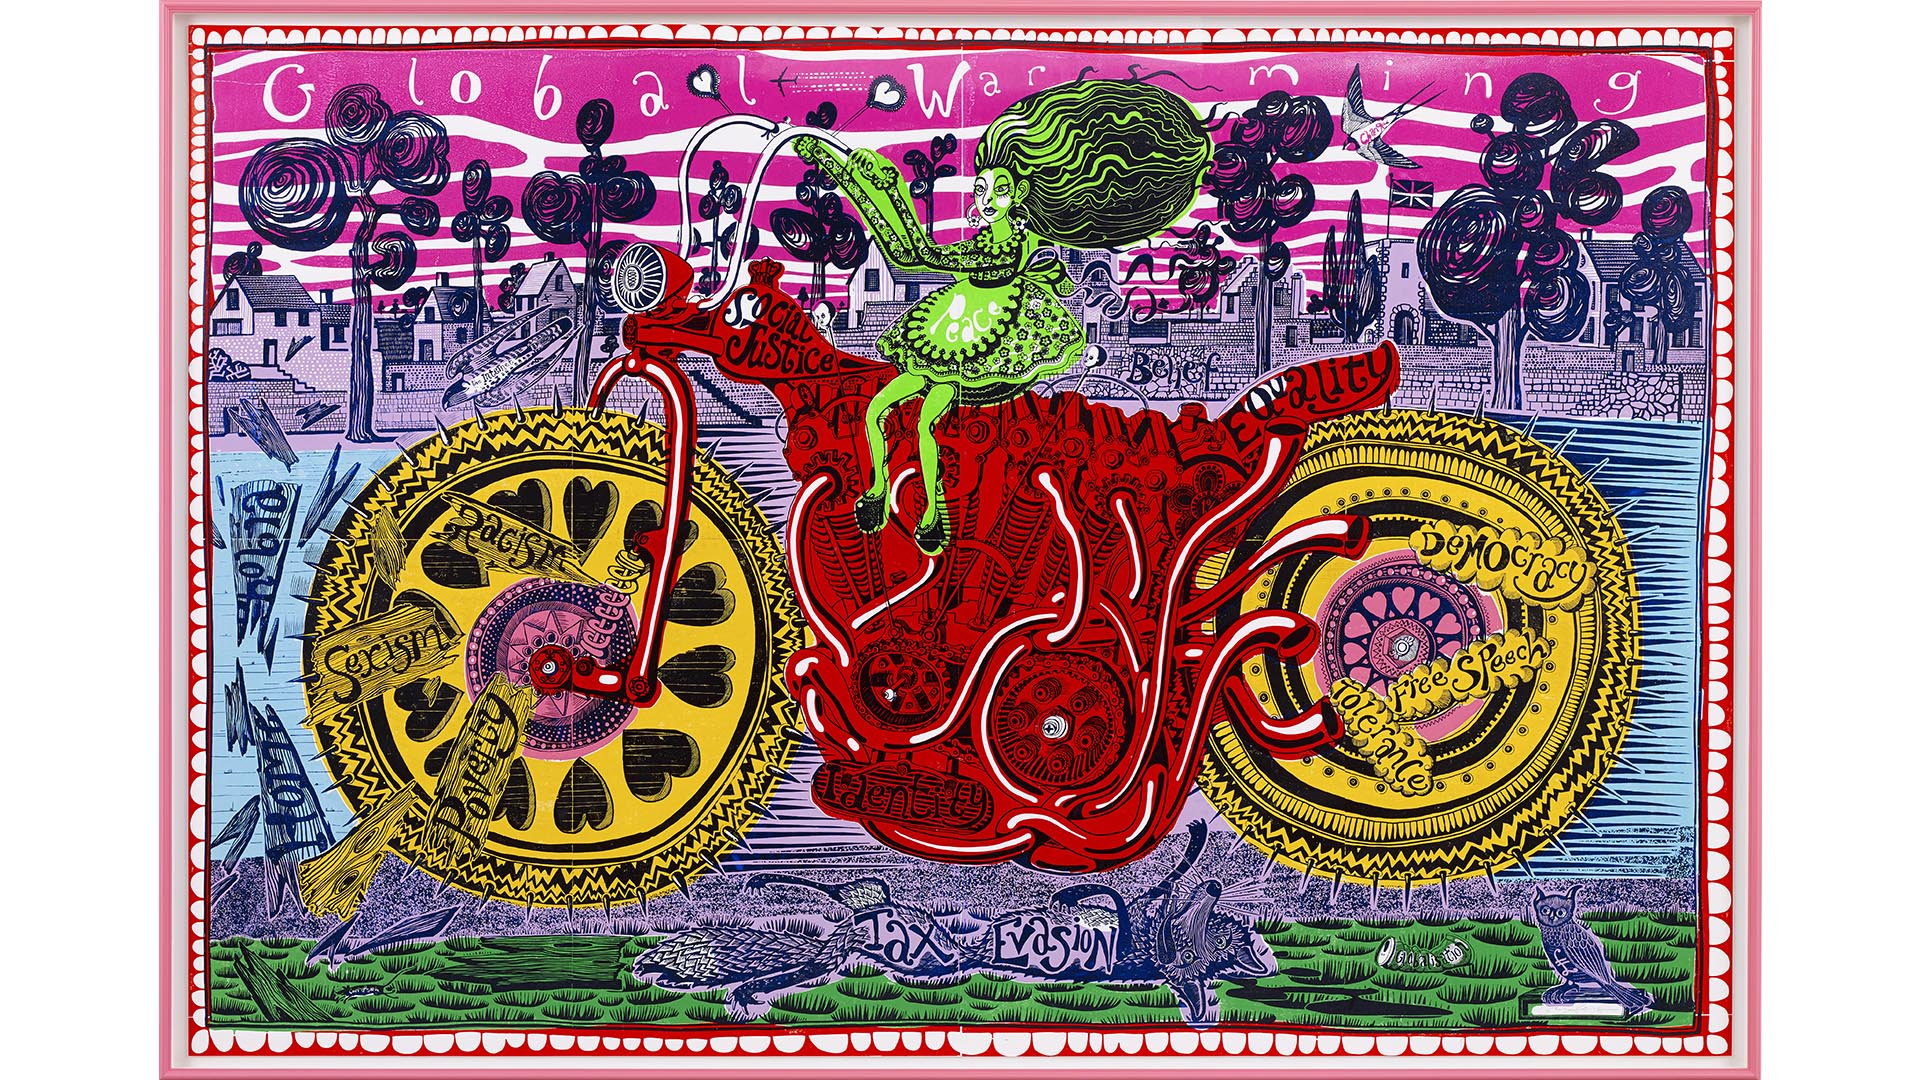 Grayson Perry Selfie with Political Causes artwork